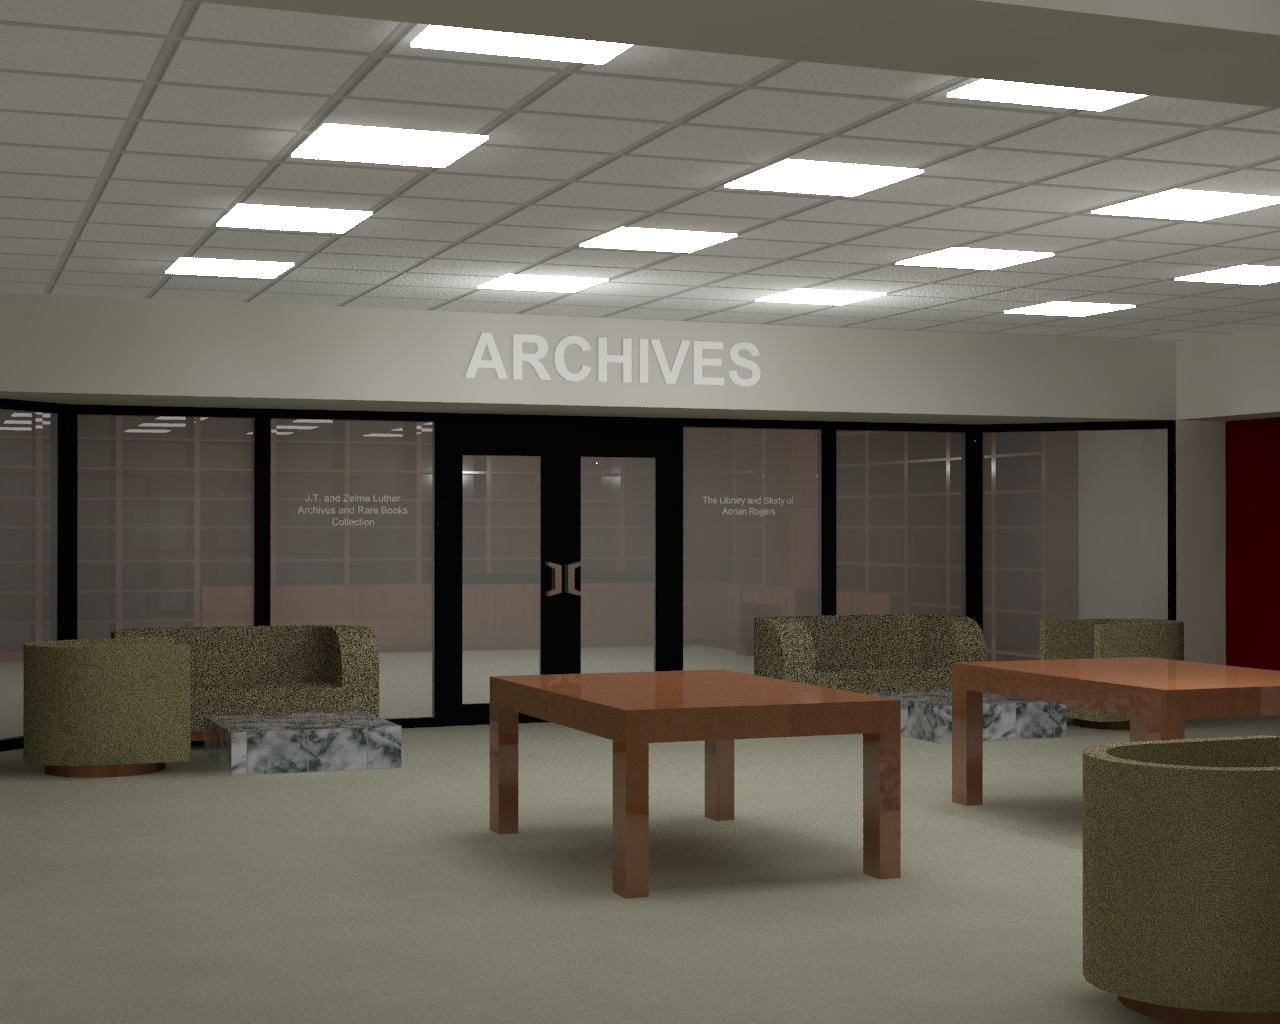 remaking-library-with-autocad-mobile